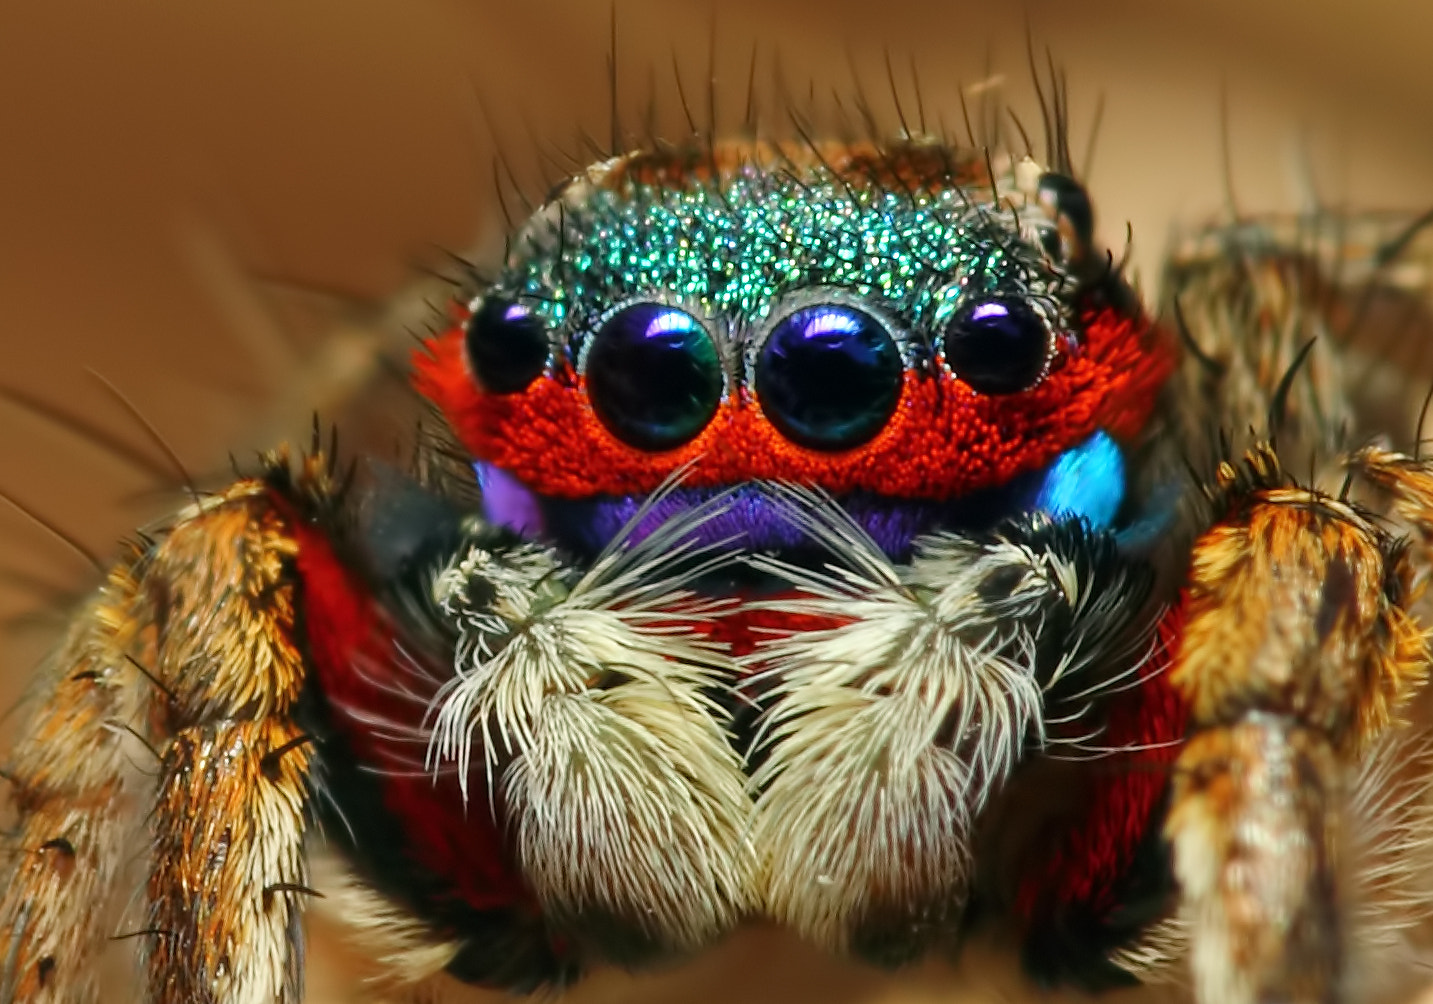 Photograph Colorful Jumping Spider by karthi keyan on 500px